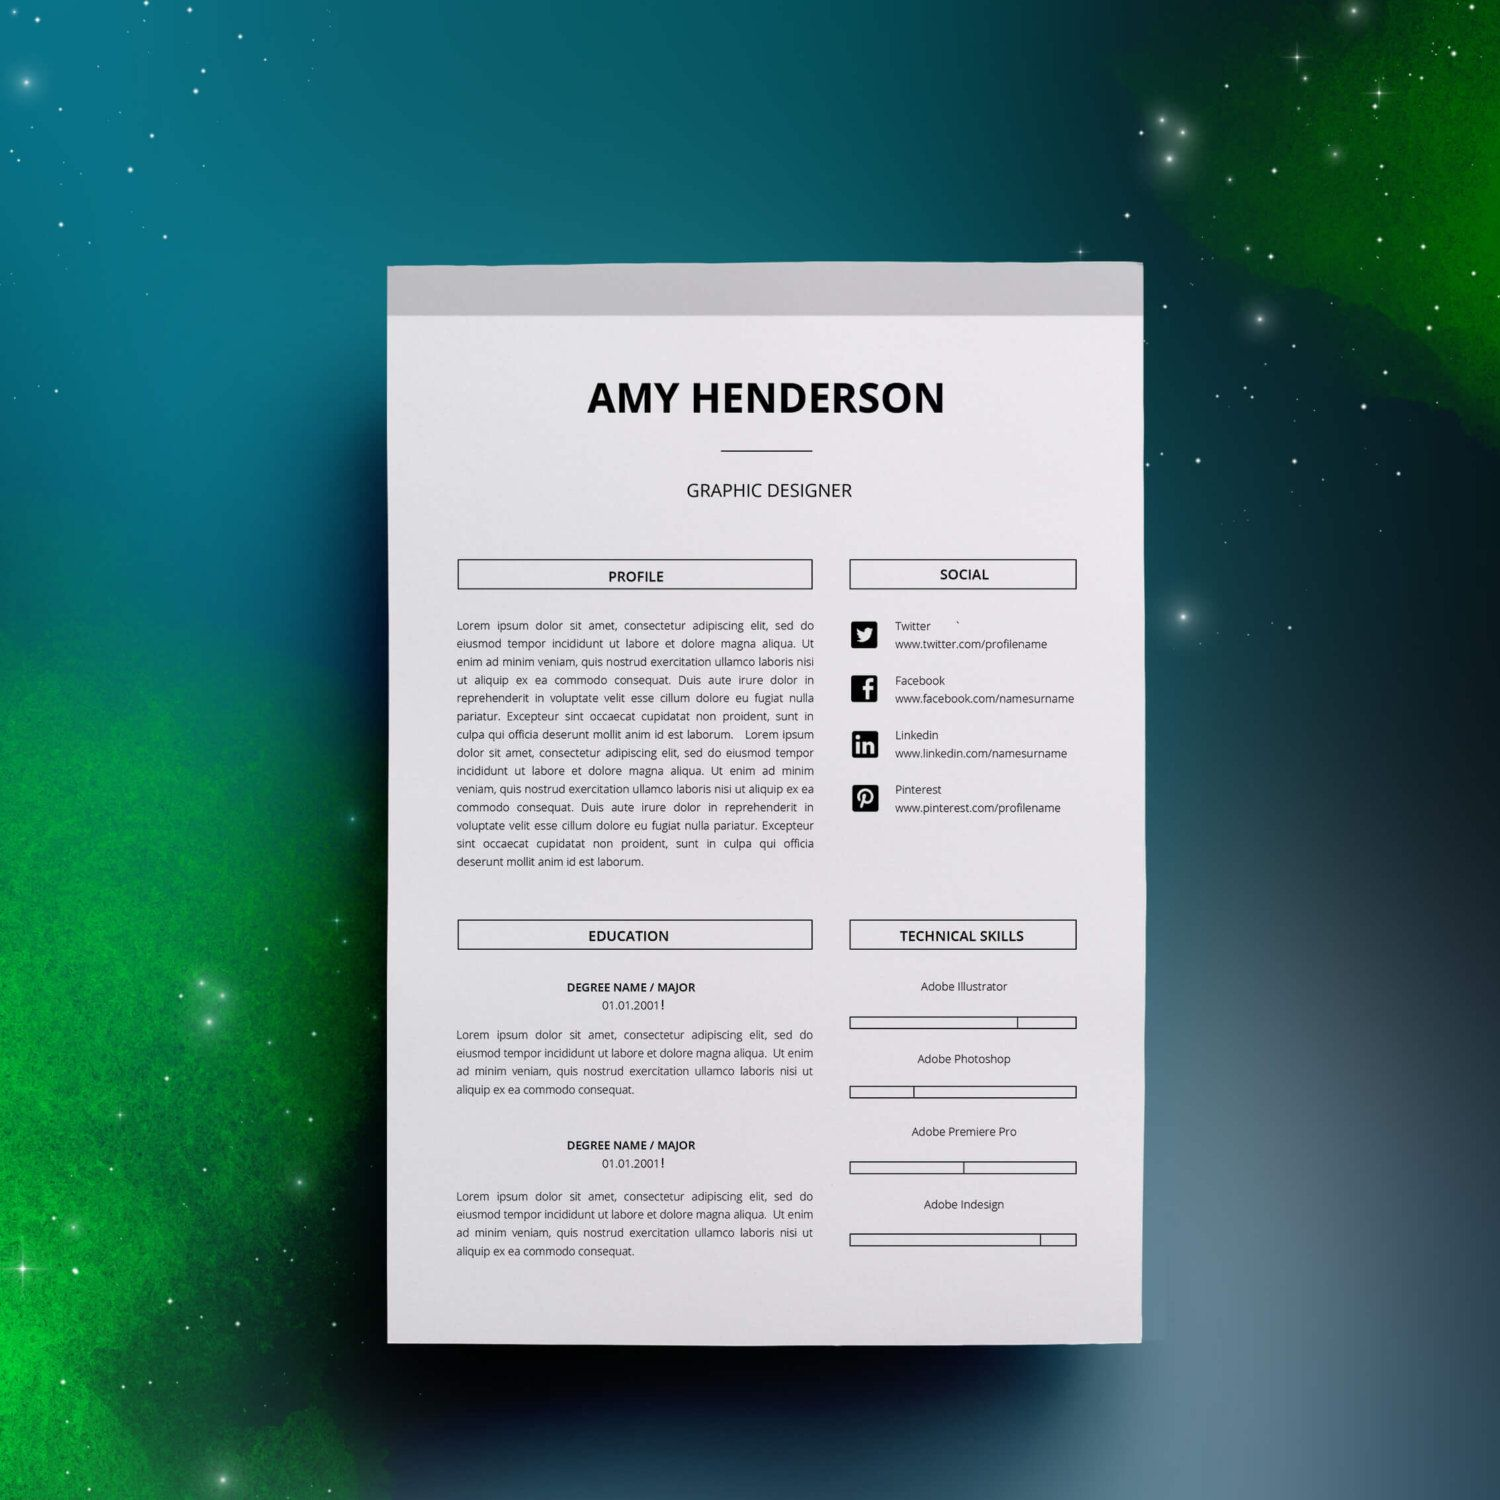 Template For A Resume In Word%0A Modern Resume Template    pages   Cover Letter for Word   DIY Printable    Professional and Creative Resume Design   MAC or PC